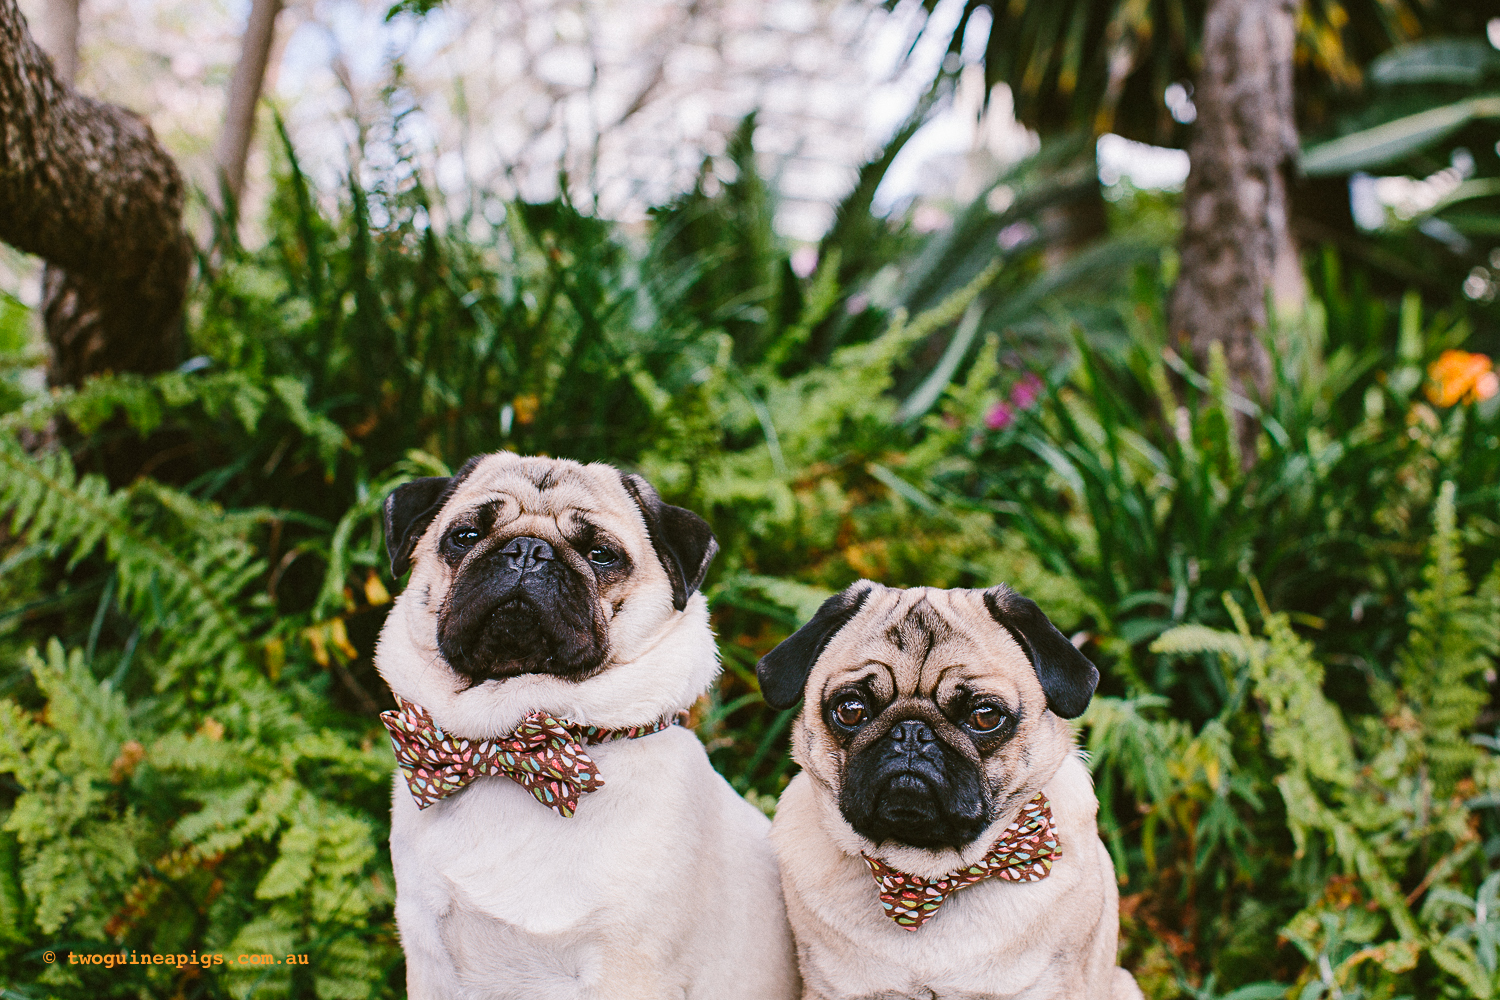 twoguineapigs_pet_photography_oh_jaffa_picnic_pugs_rodger_1500-35.jpg